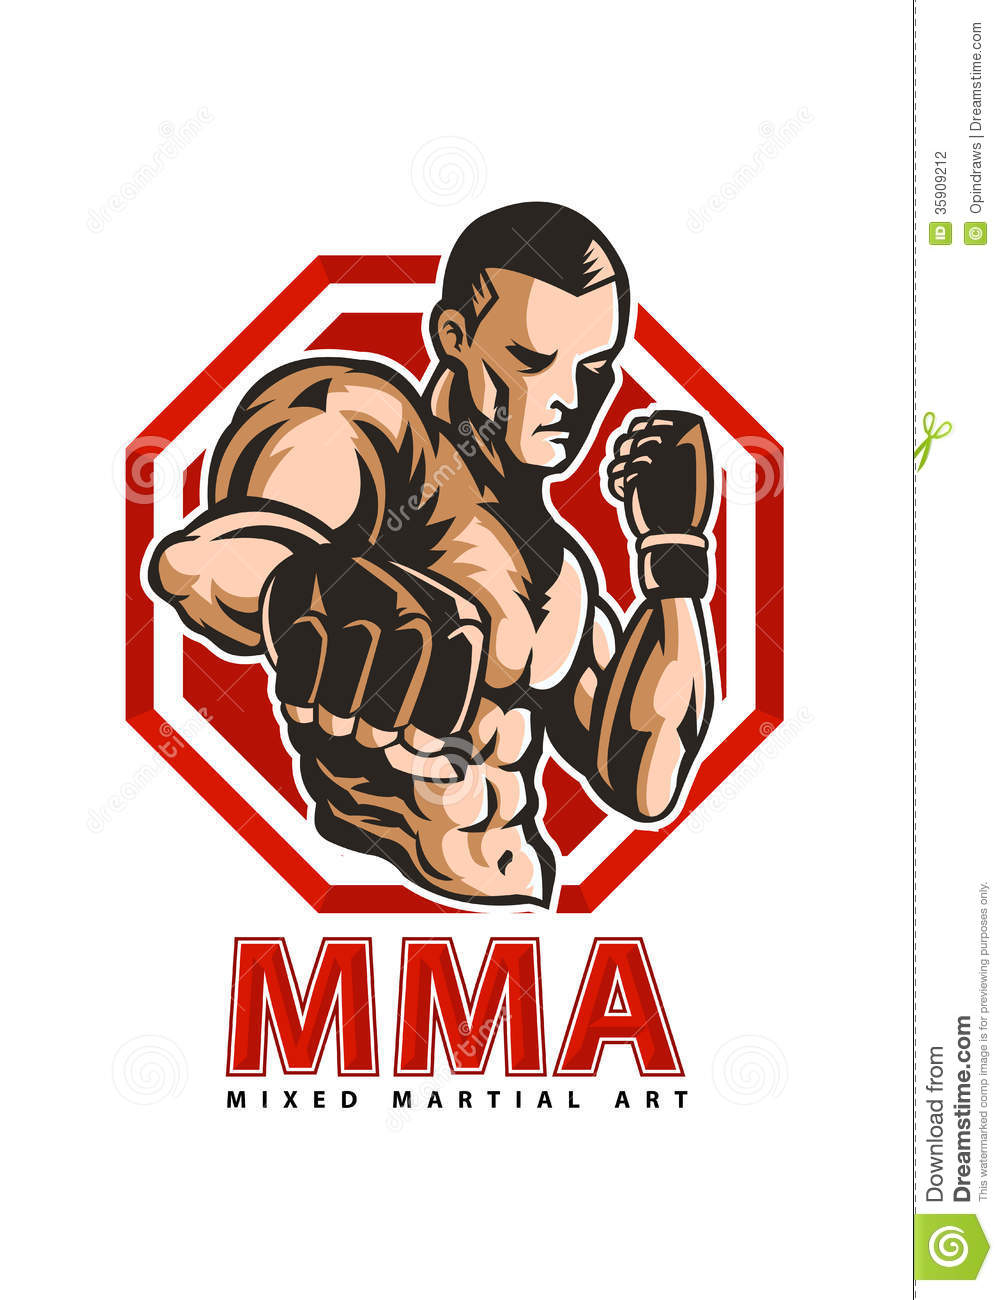 the popularity of mixed martial arts For this case study, an internet-based survey was posted on a popular mixed-mar - tial-arts (mma) blog to ascertain its users' demographics and usage trends.